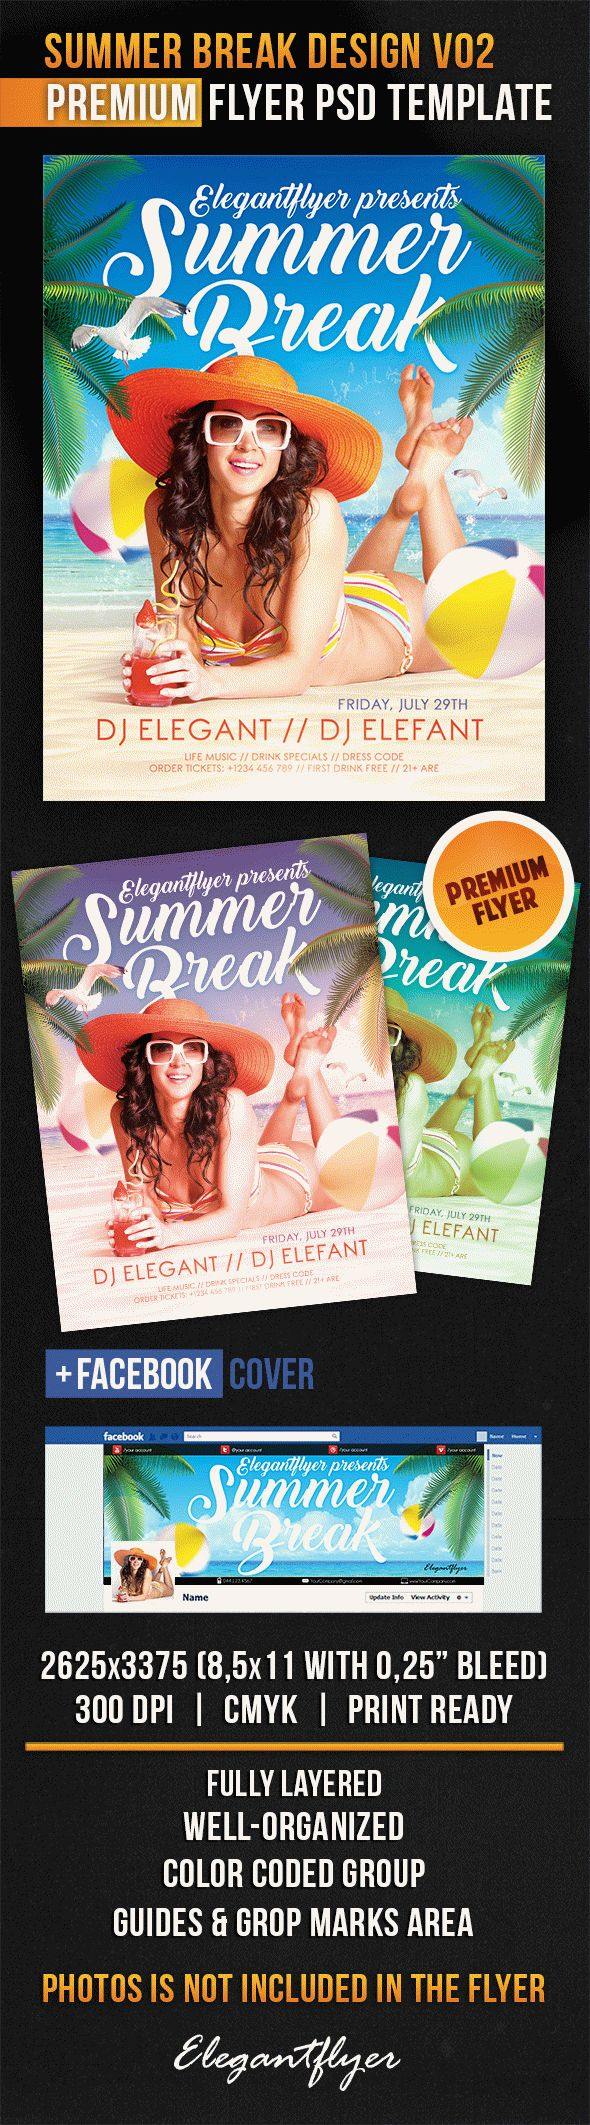 Summer Break Design V02 – Flyer PSD Template + Facebook Cover